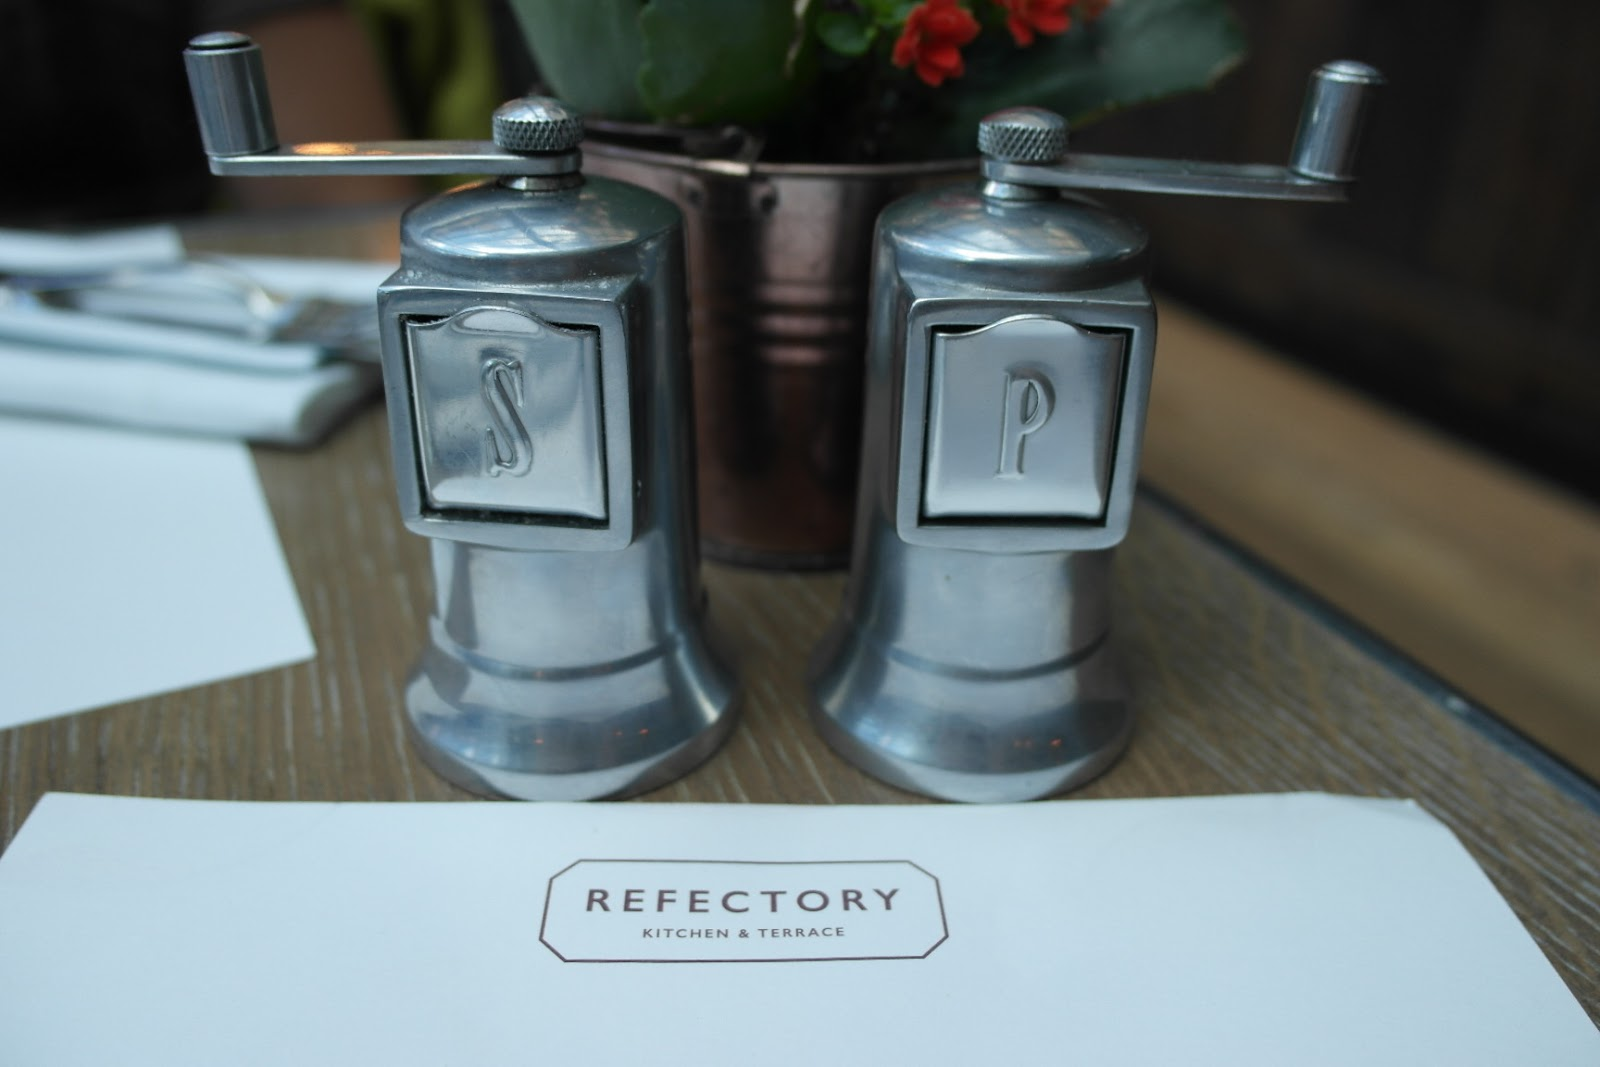 The Refectory Restaurant, The Royal York Hotel review